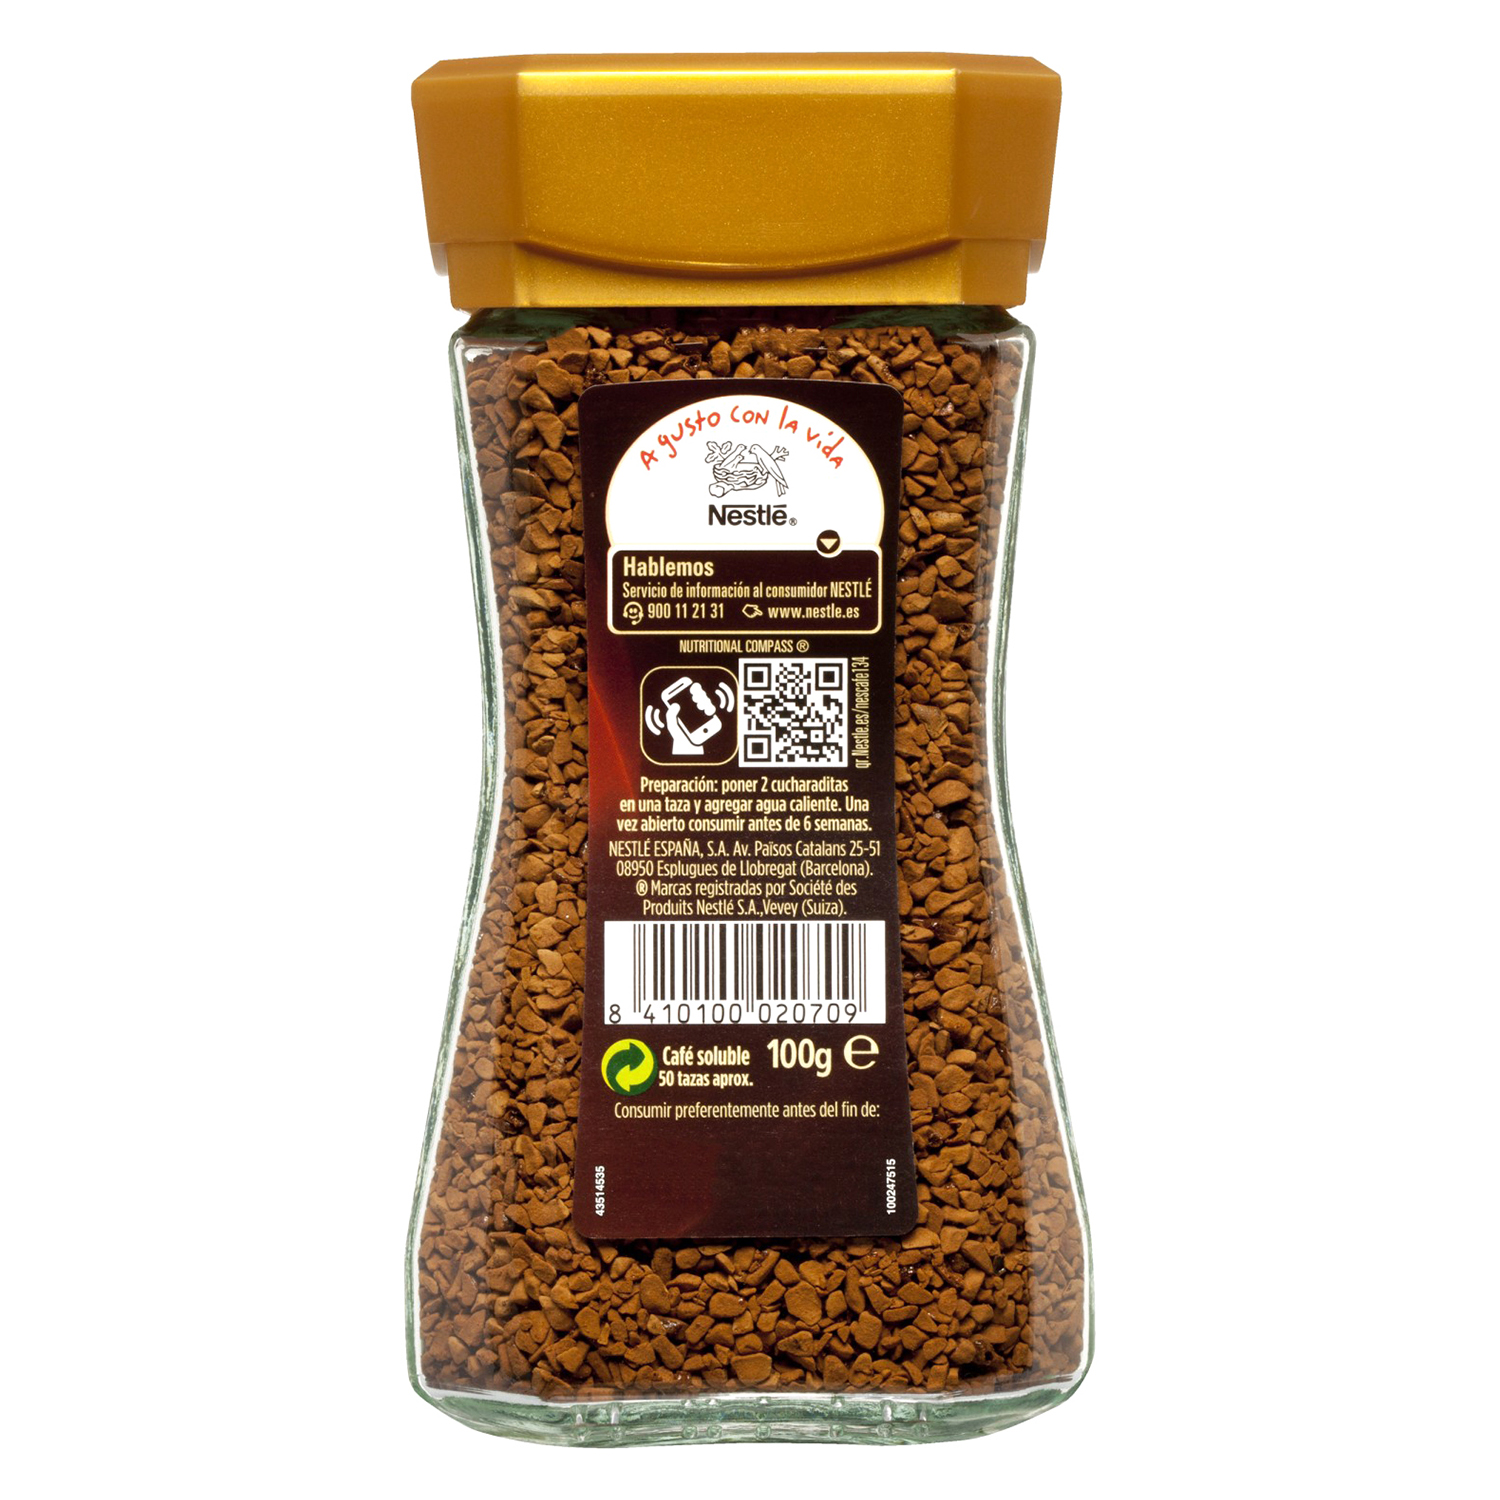 Café soluble natural Gold Nescafé 100 g. - 2